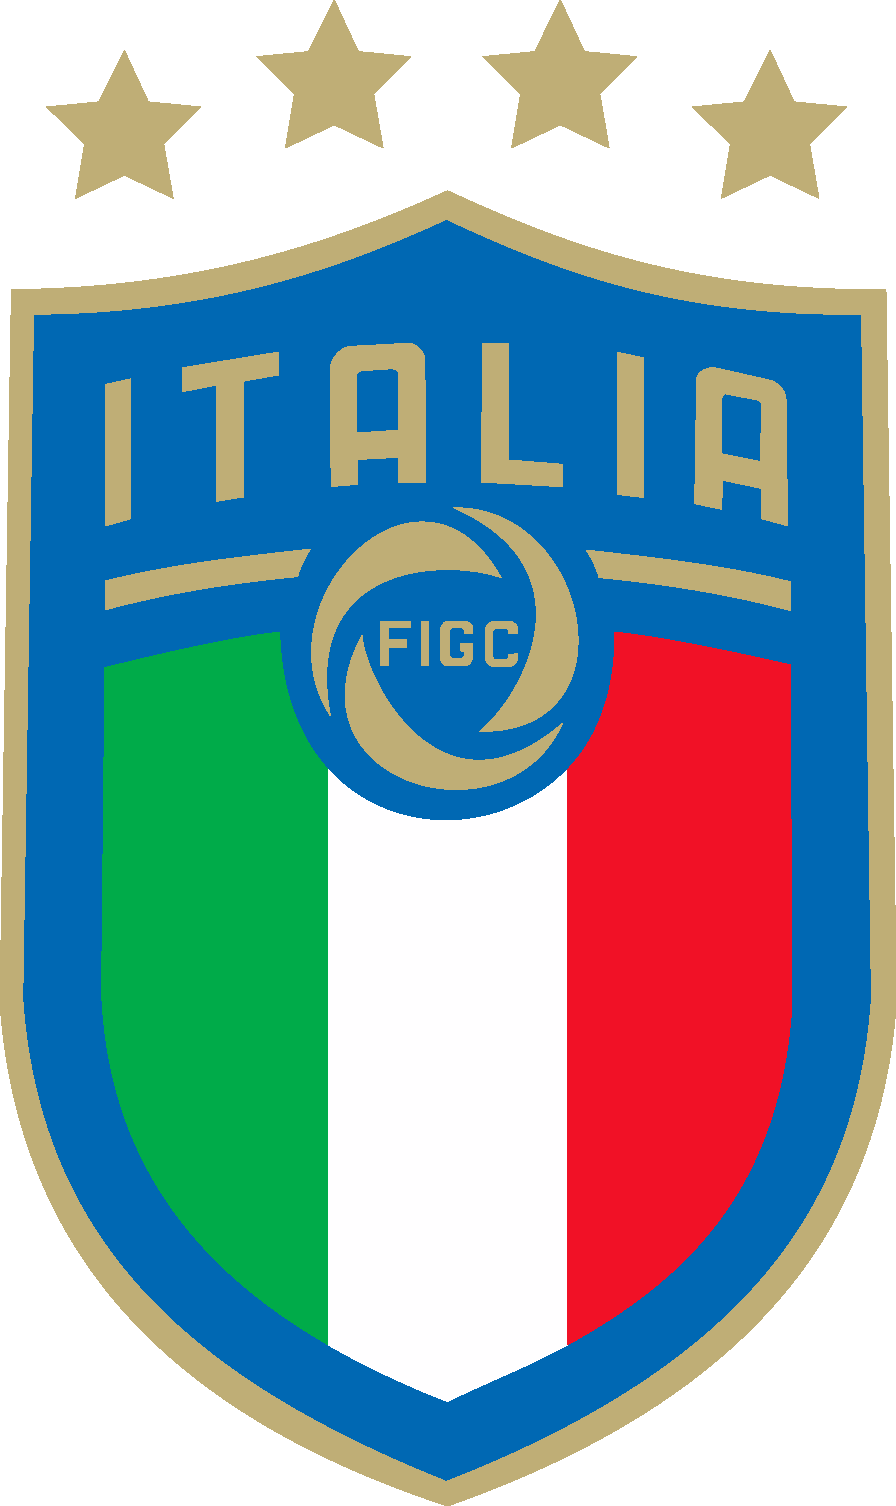 Football clipart eps. Italian federation italy national